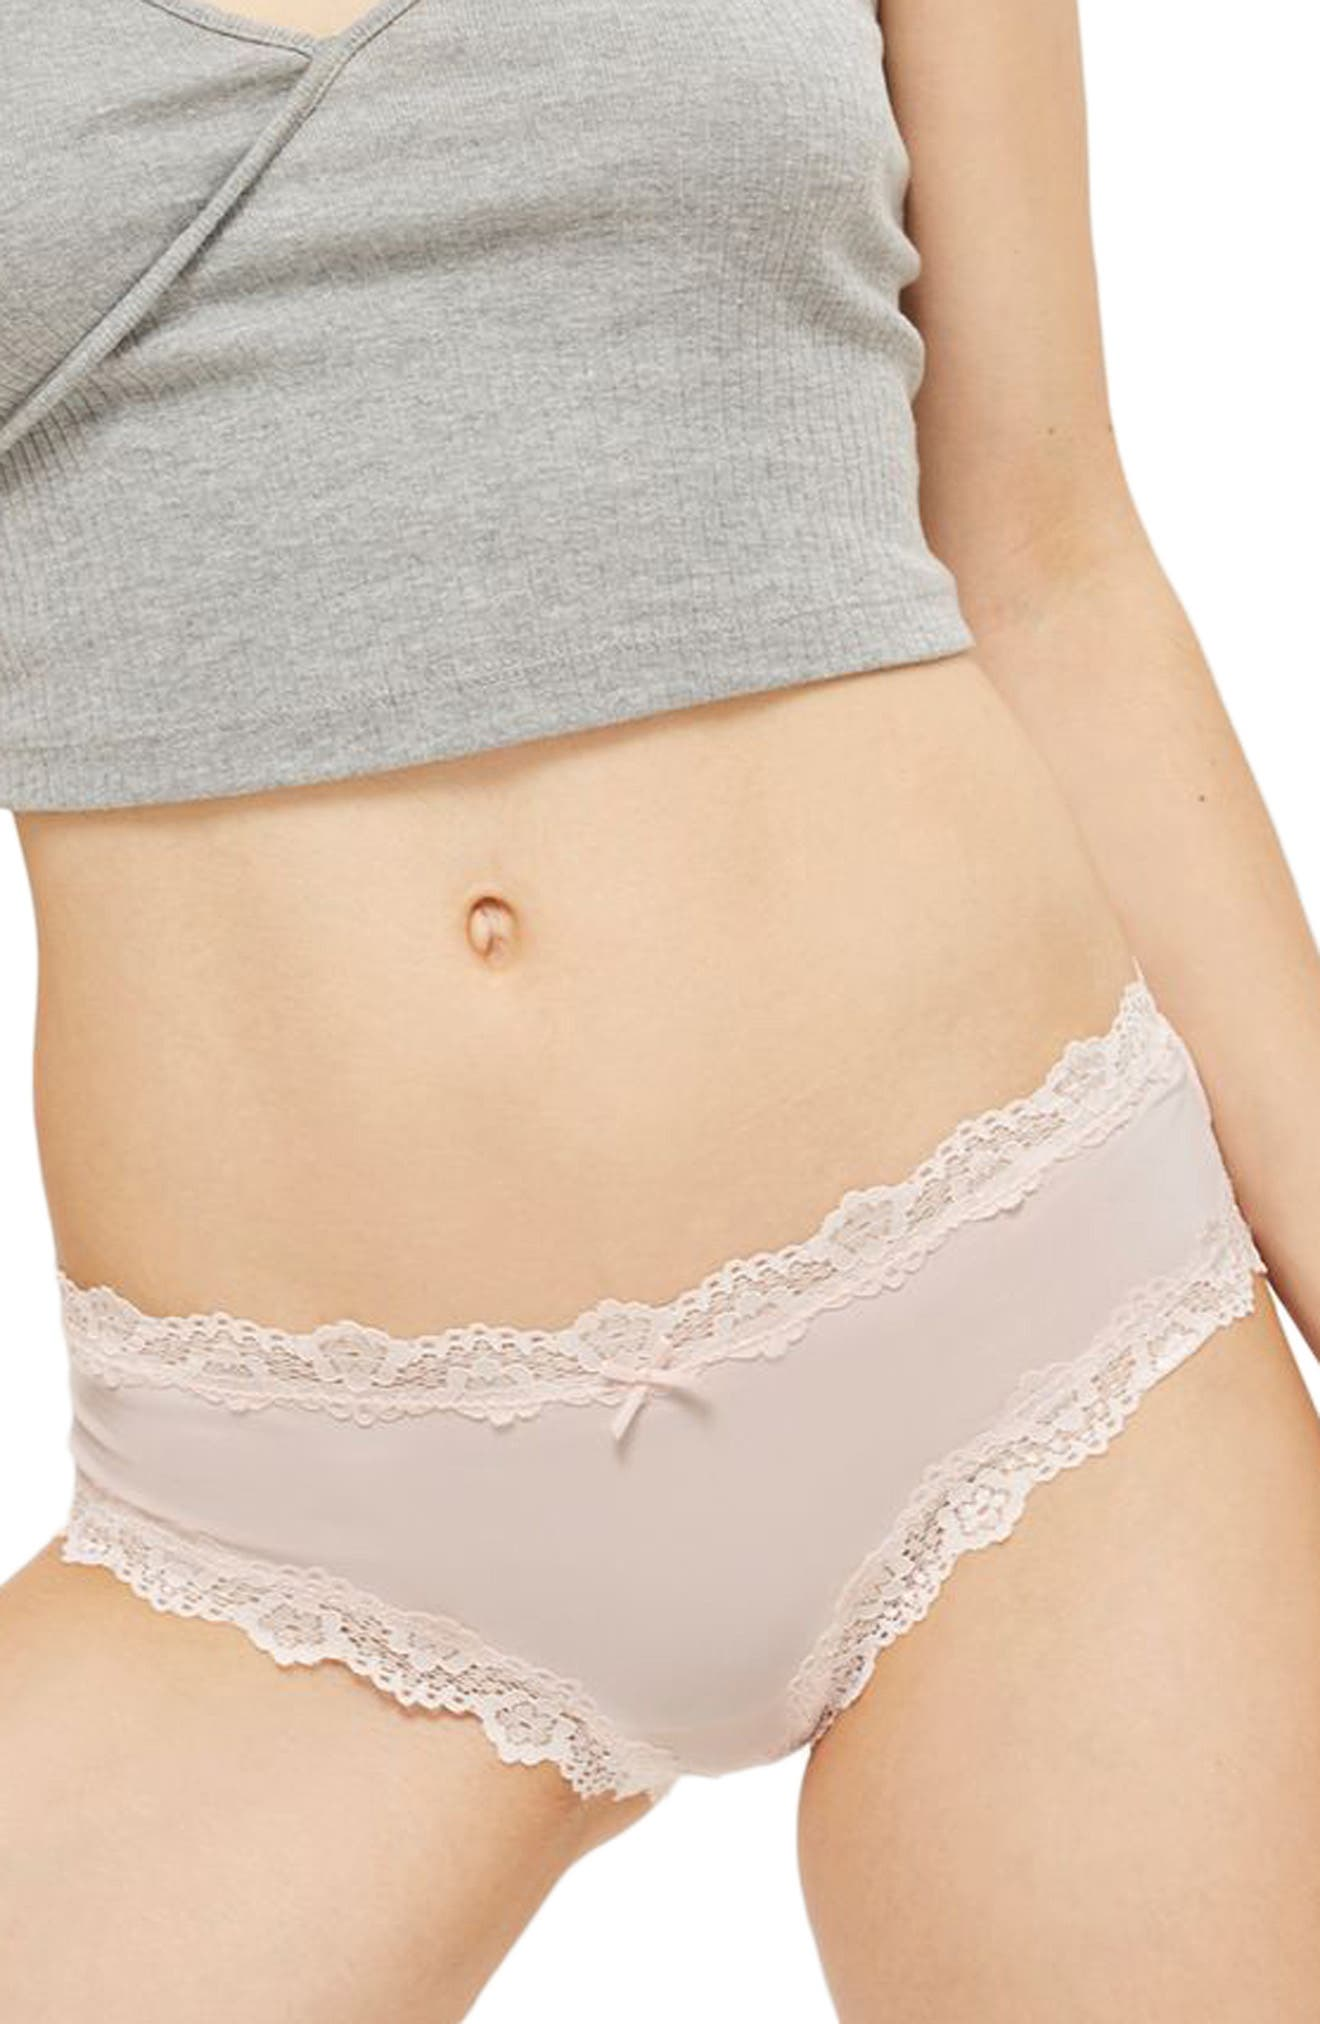 Topshop Dorothy Lace Microfiber Hipster Briefs